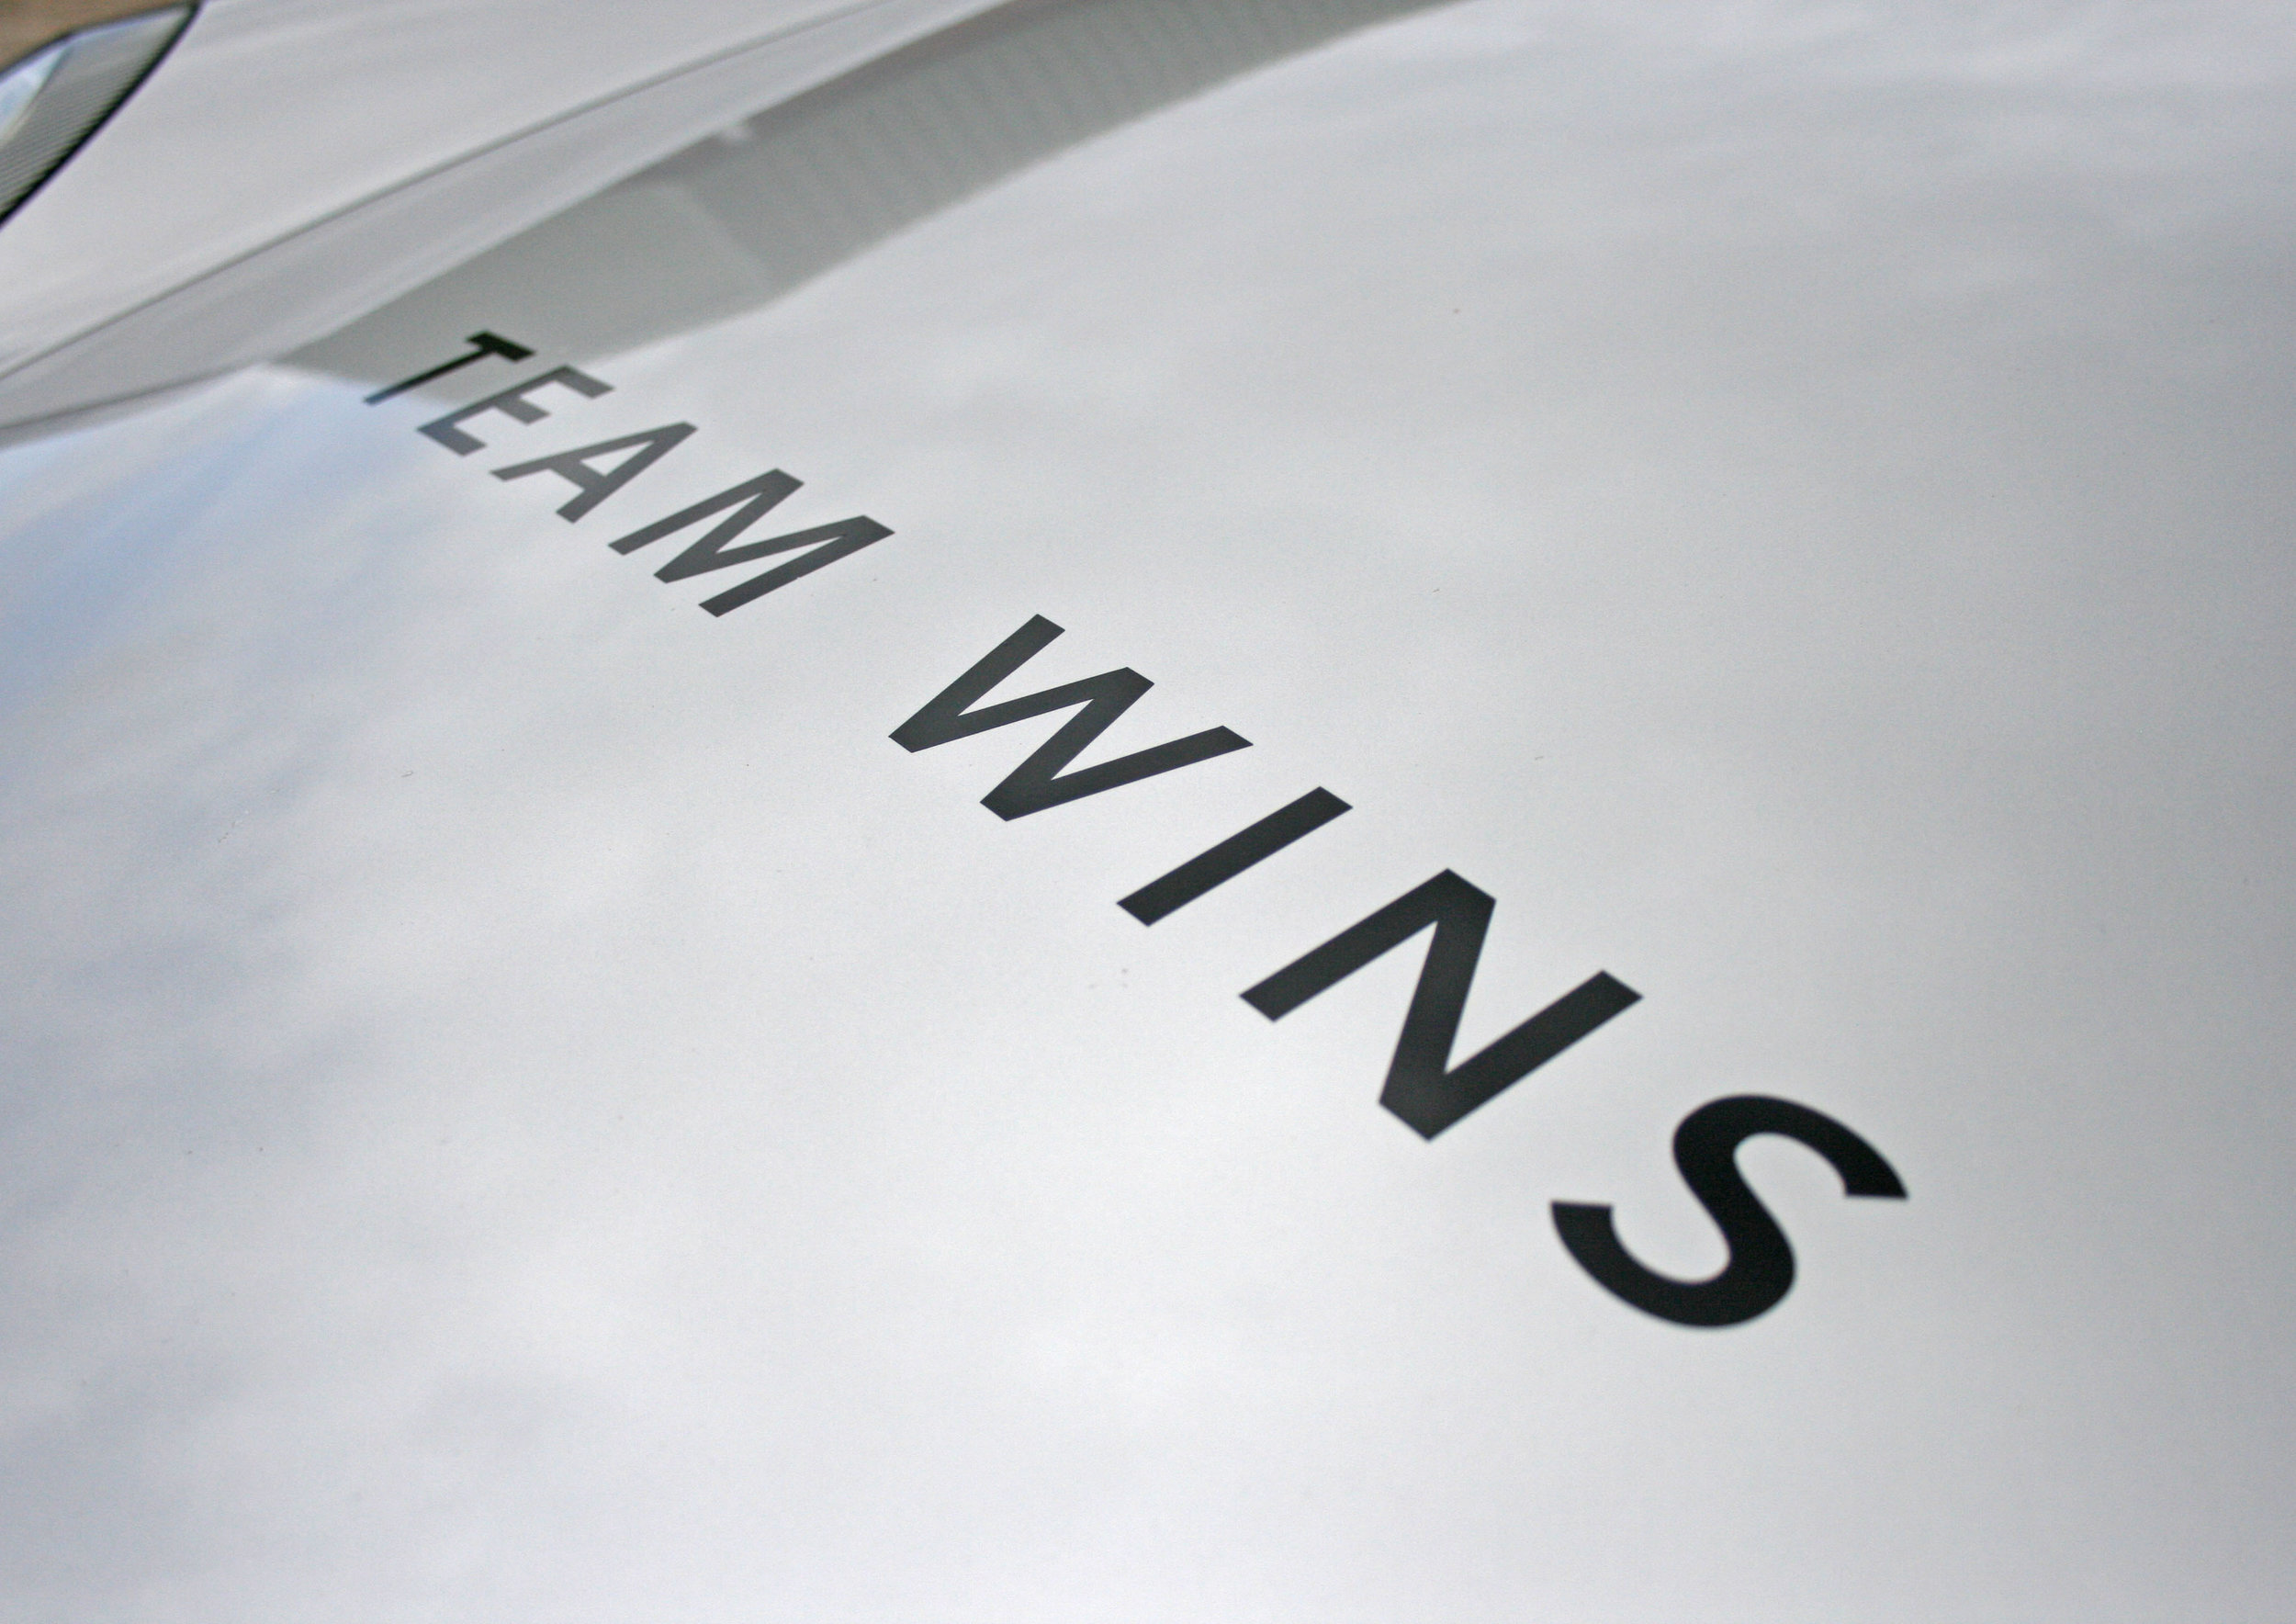 DETAIL TEAMWINS 2.jpg